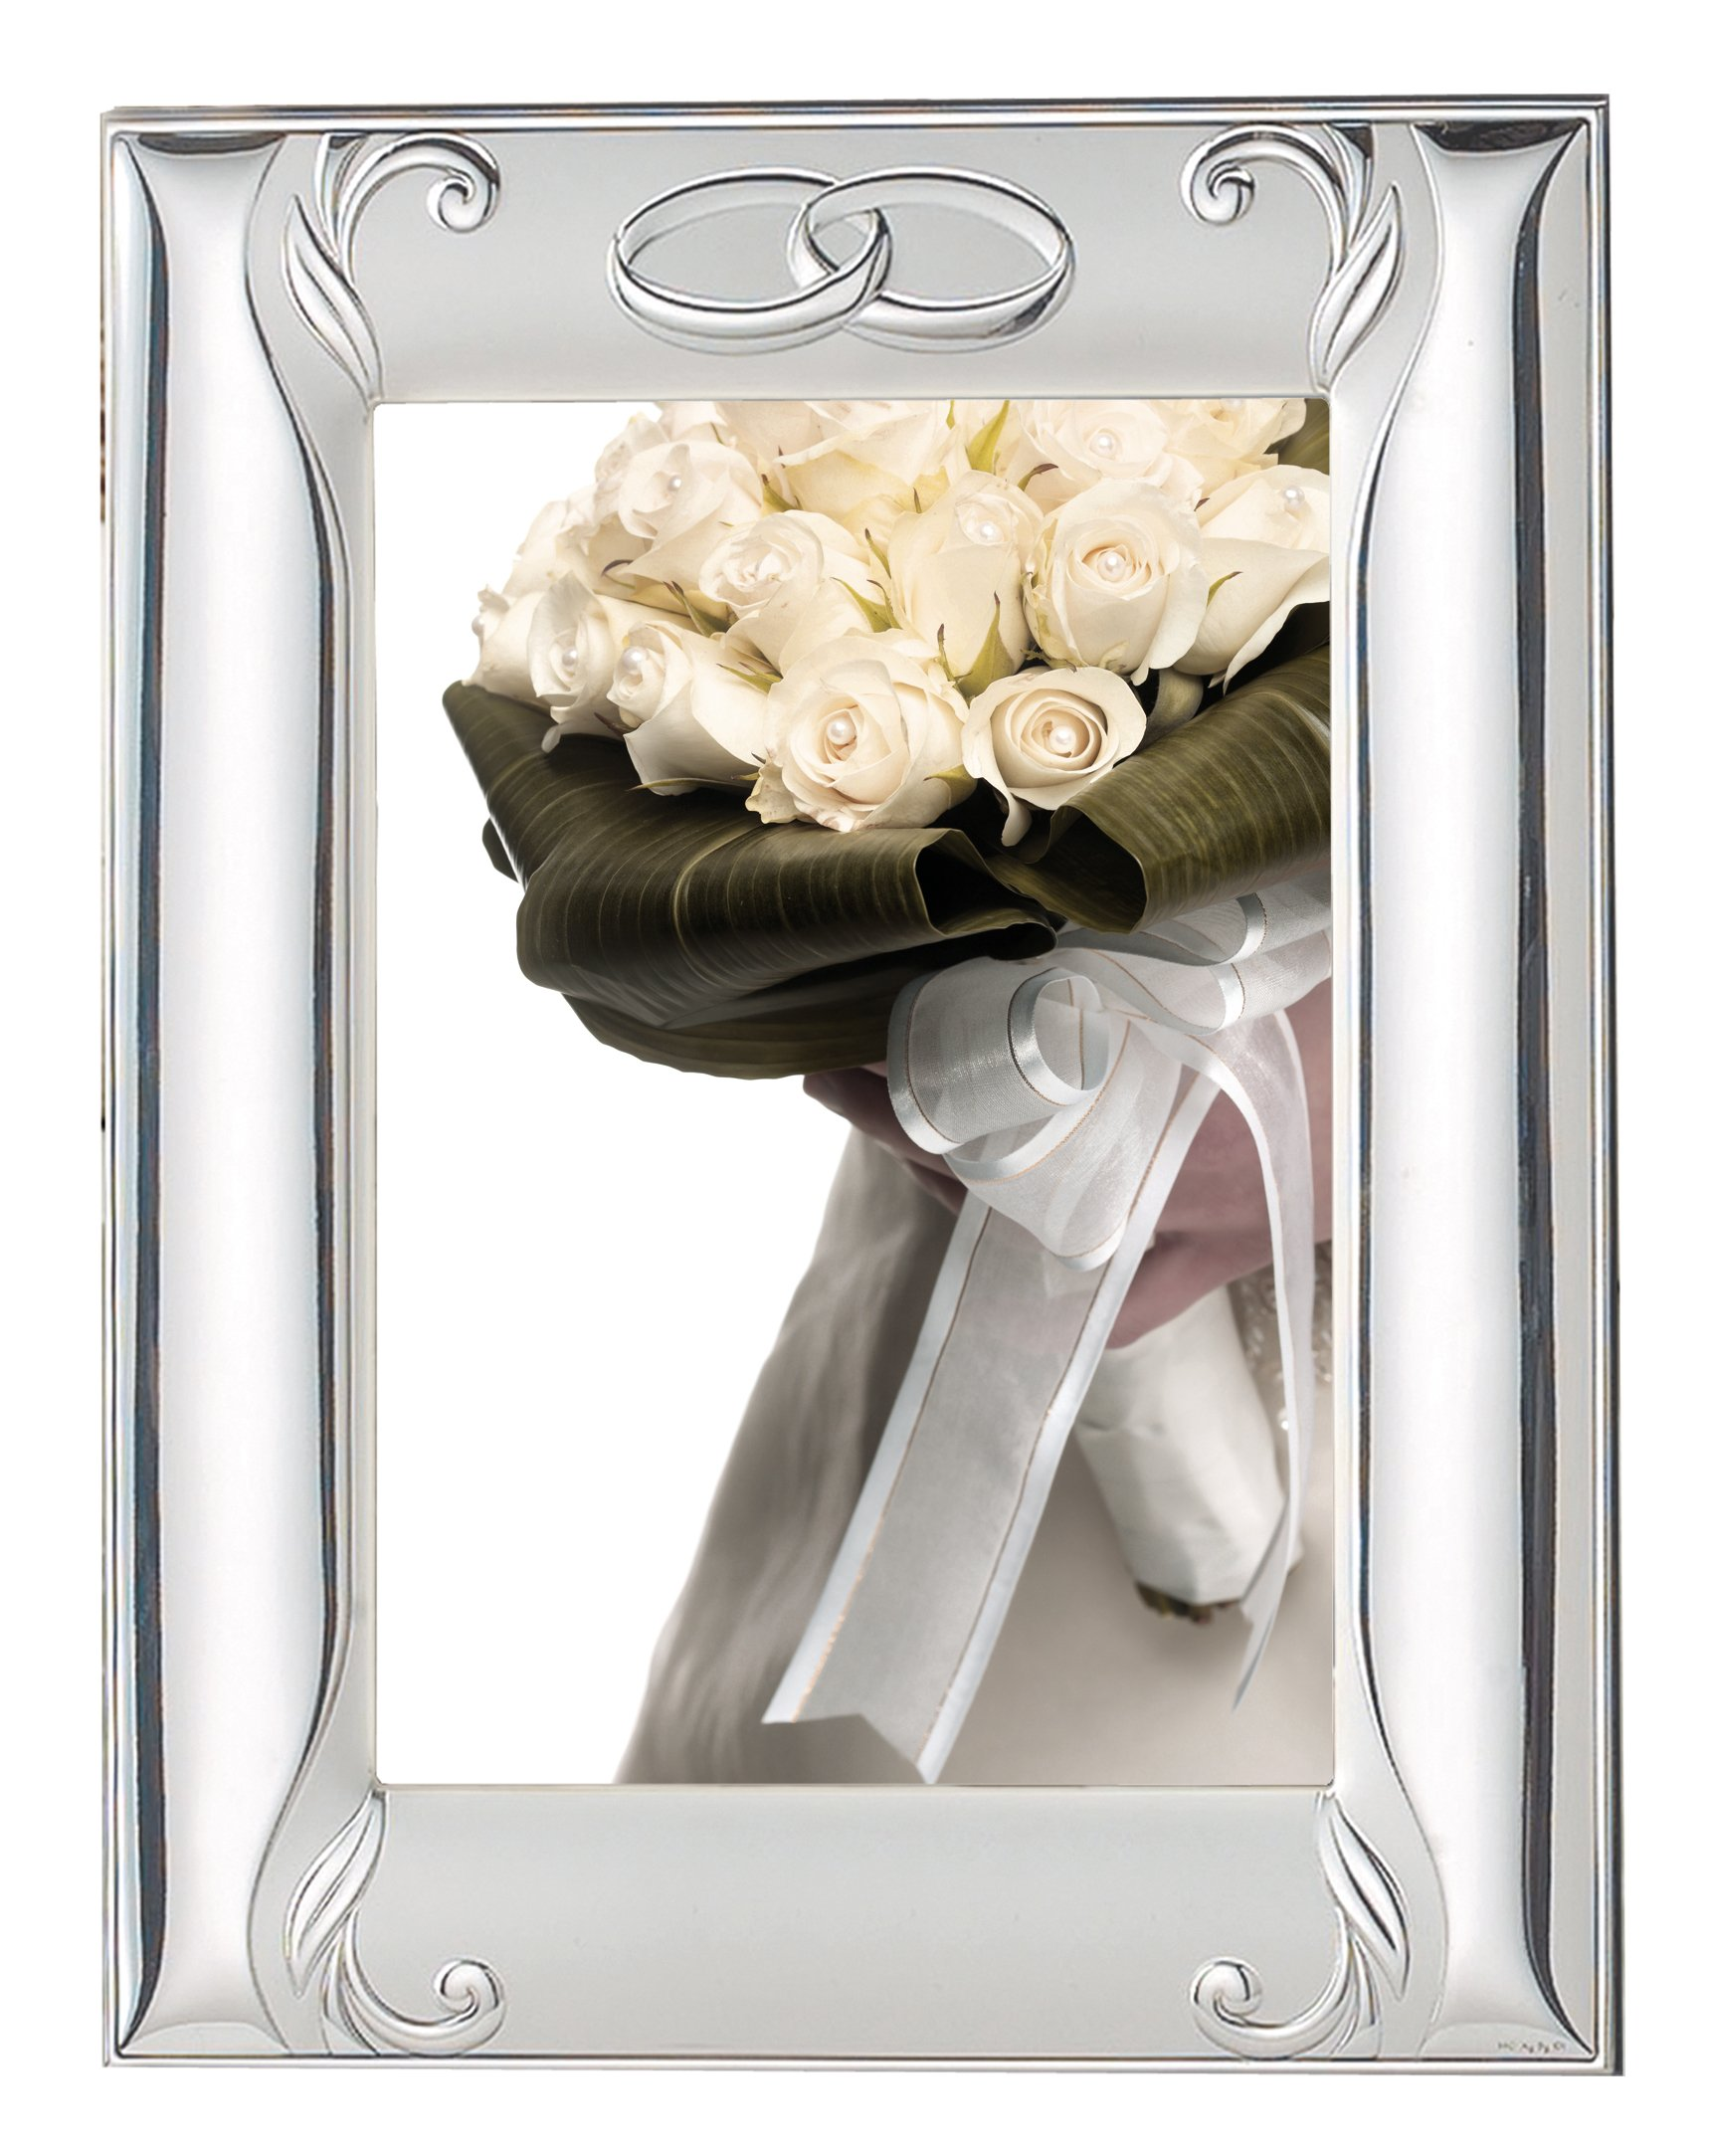 STERLING SILVER PICTURE FRAME ANNIVERSARY ''INTERLOCKING RINGS'' and MIRROR (8'' x 10''). Made in ITALY